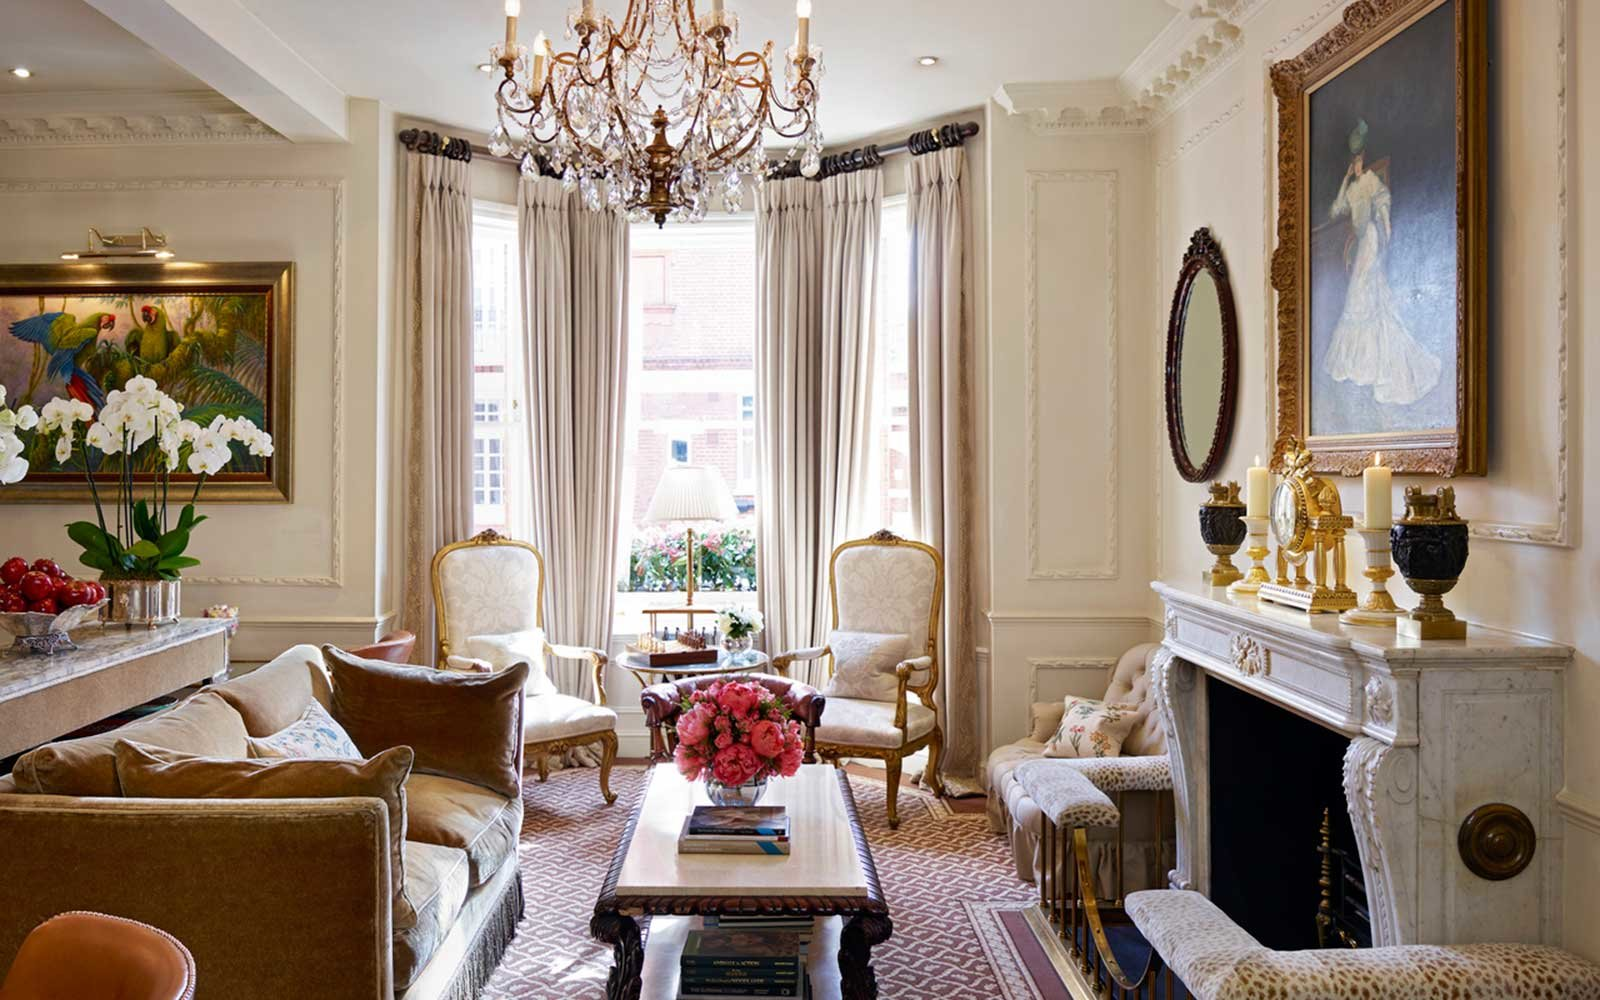 4. Egerton House Hotel, London